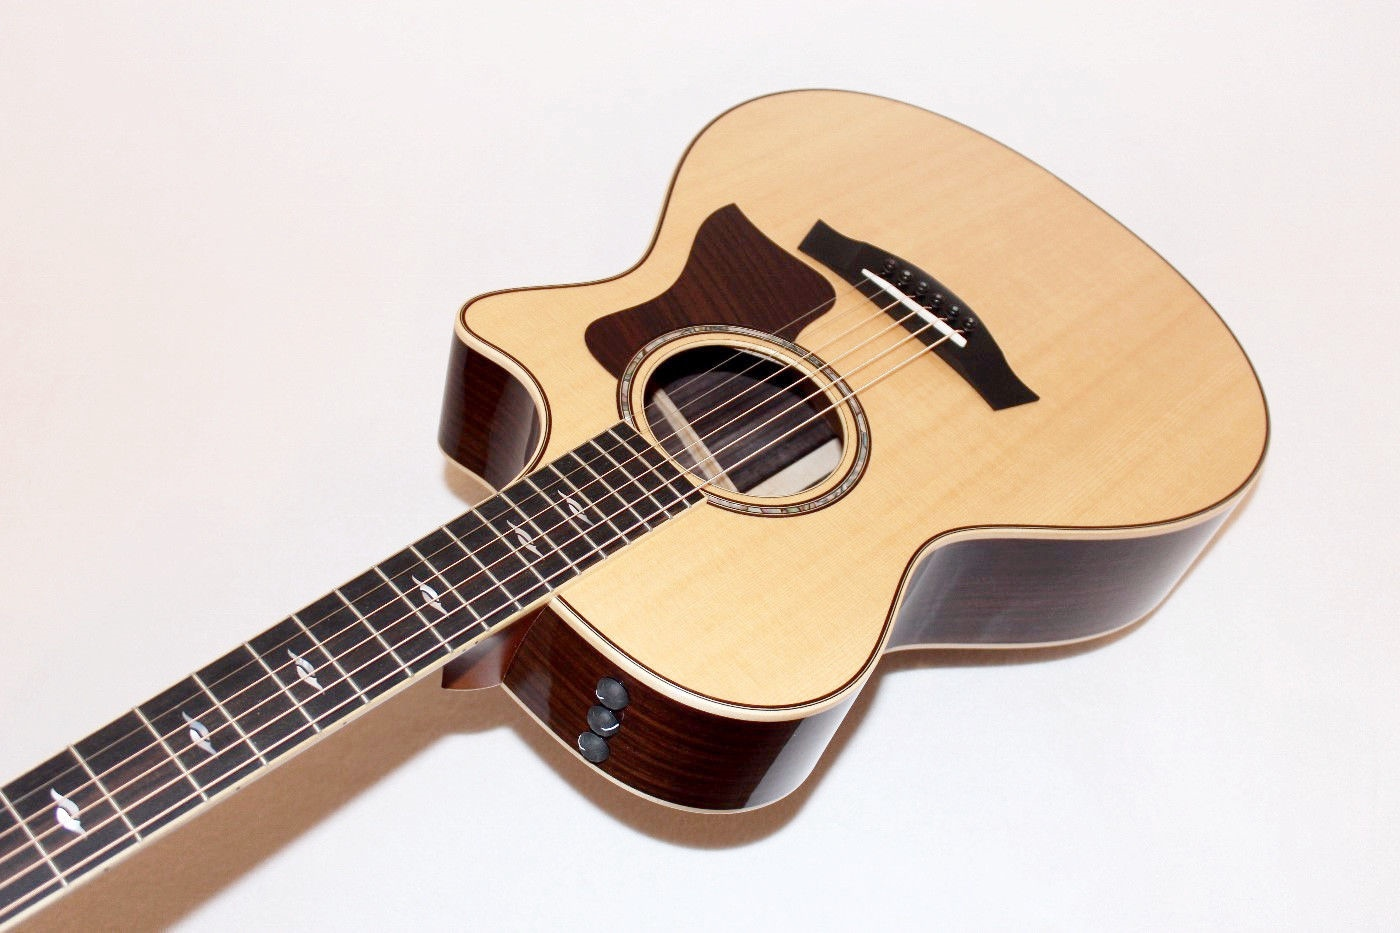 taylor 812ce usa made solid rosewood acoustic electric guitar w case ebay. Black Bedroom Furniture Sets. Home Design Ideas